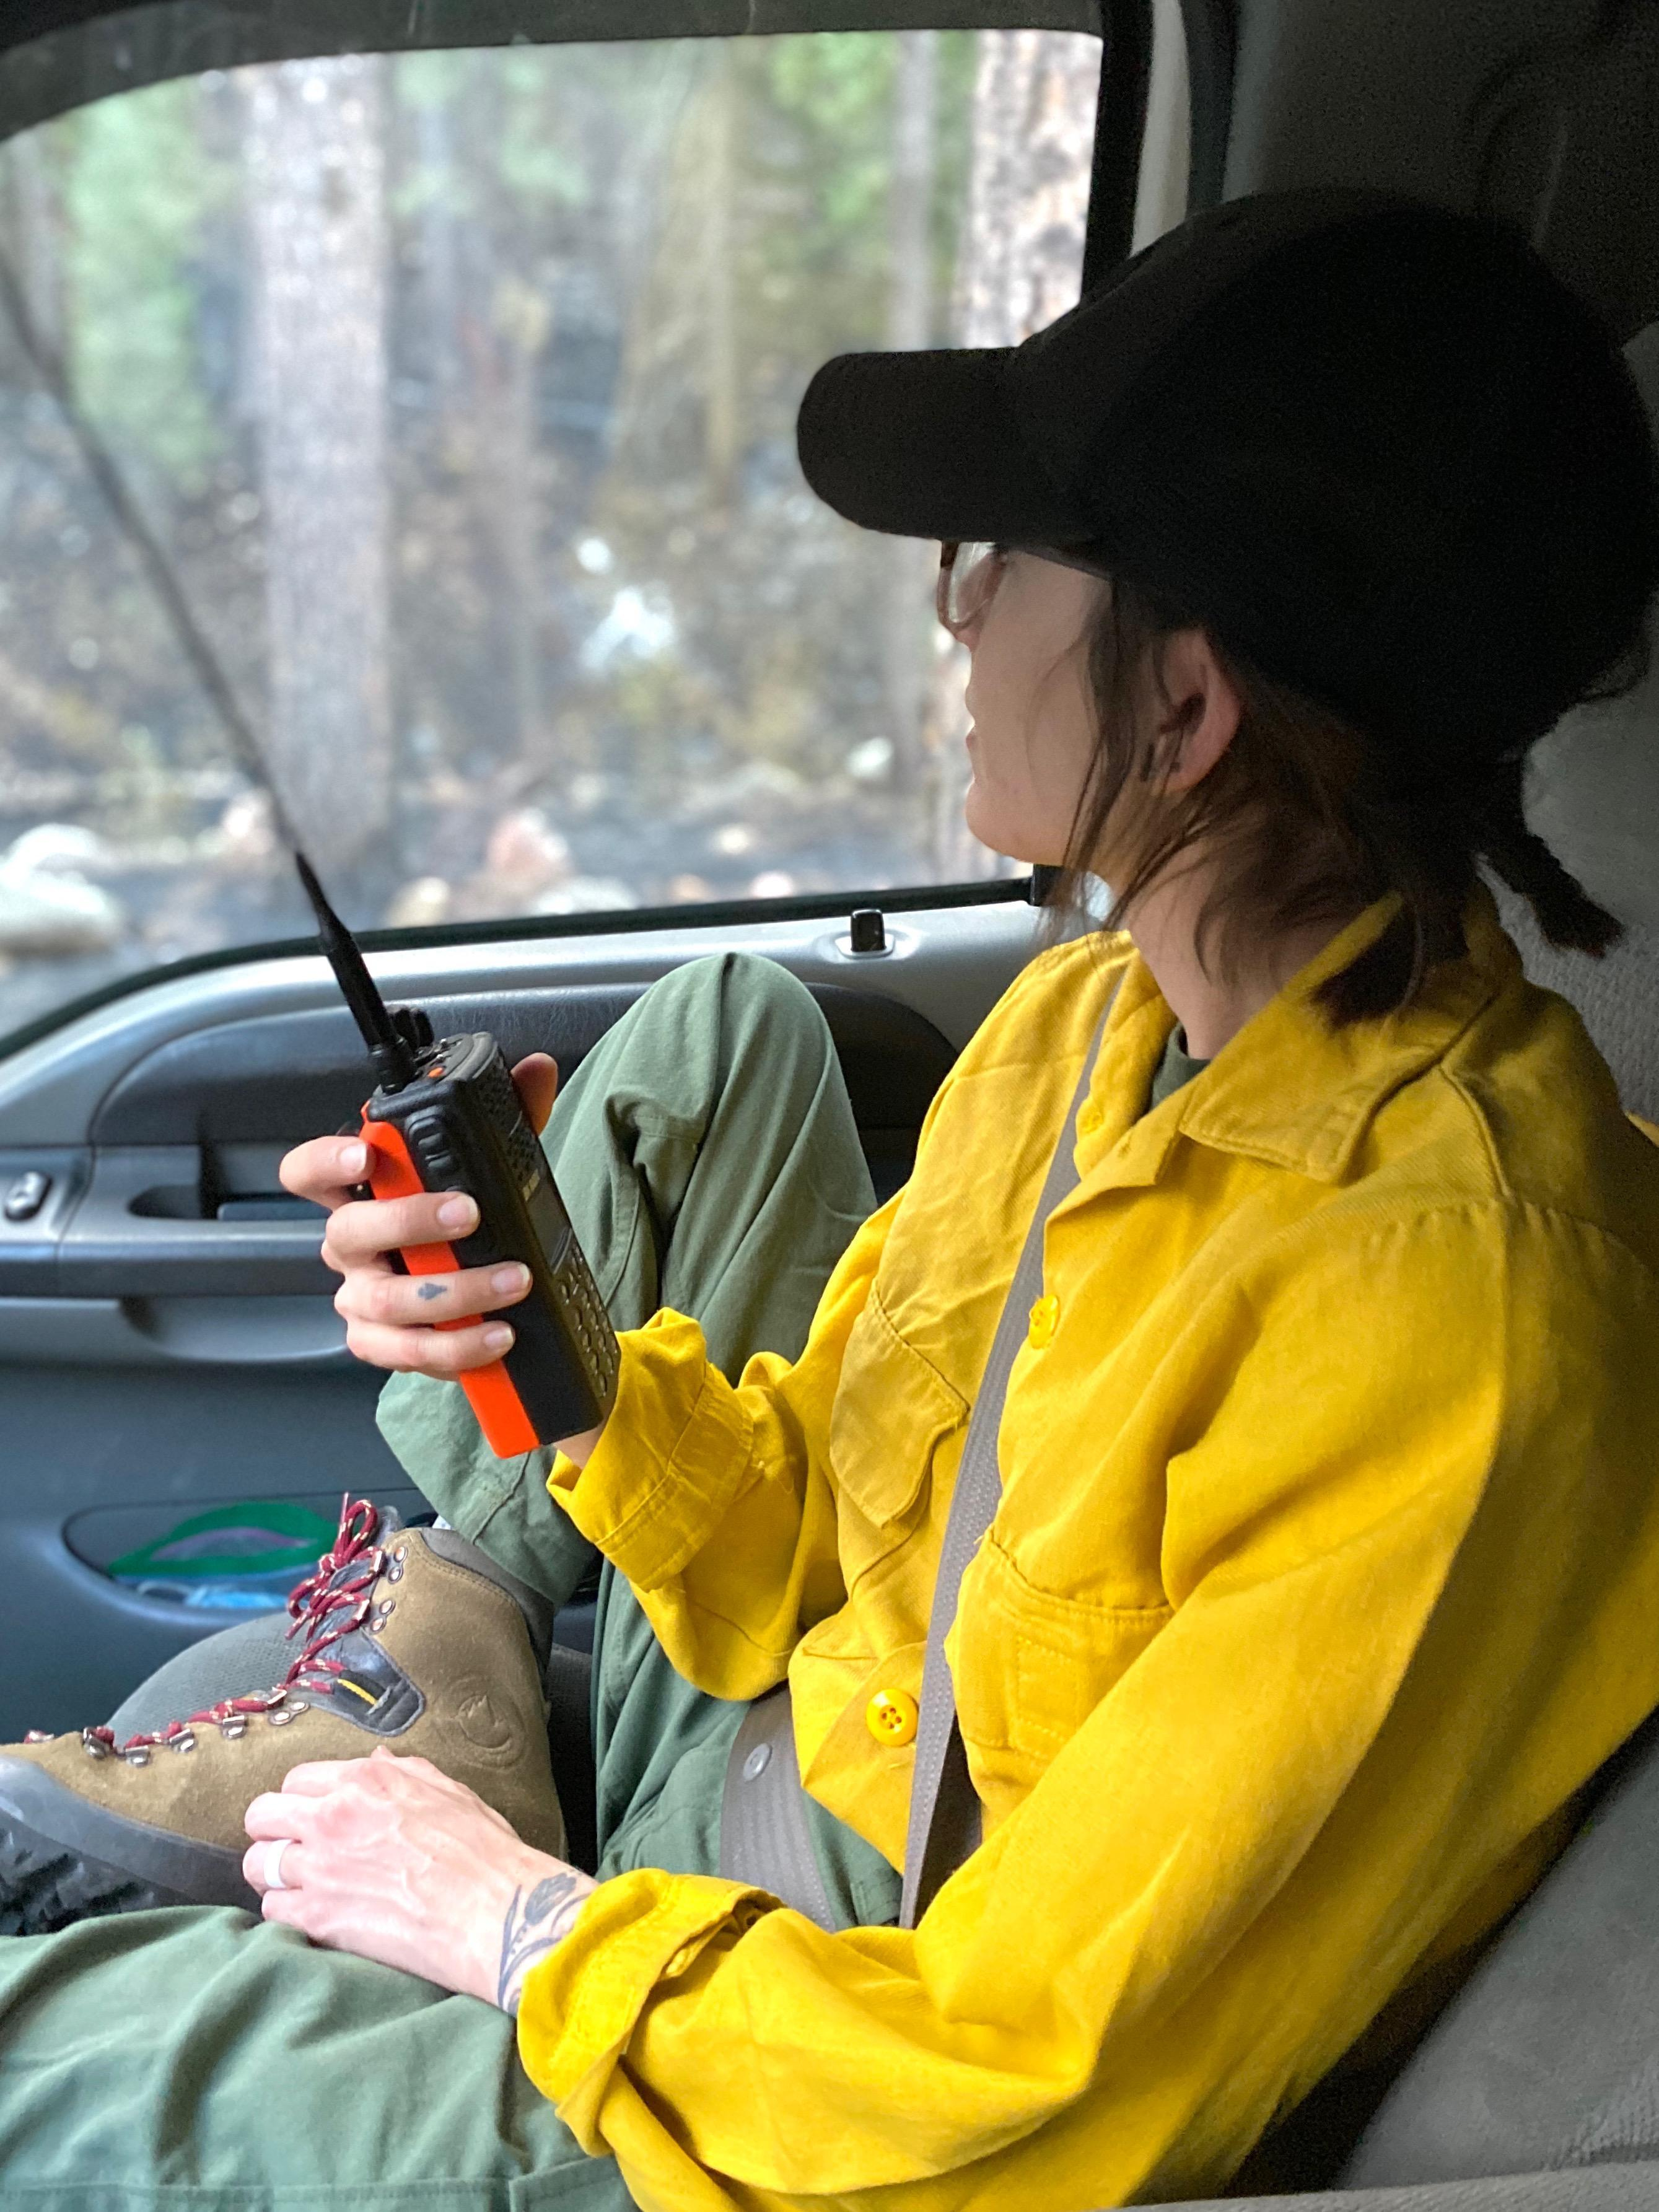 Image of Wilderness Medics Inc. crew member on Tadpole fire 06/11/2020 by Molly Barker